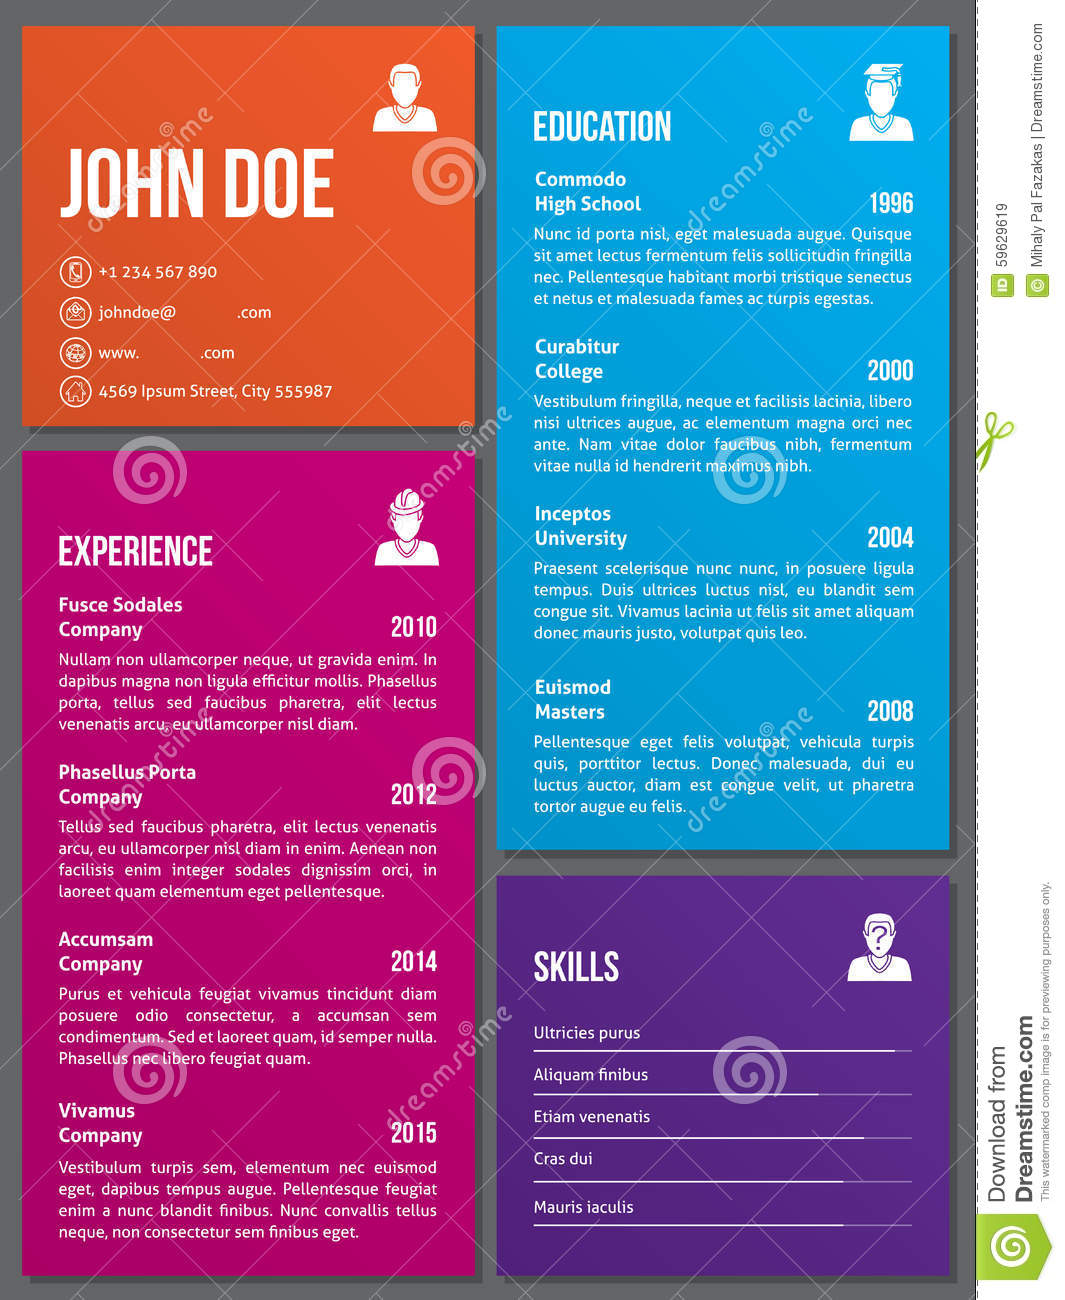 metro design cv resume template stock vector image 59629619 metro design cv resume template